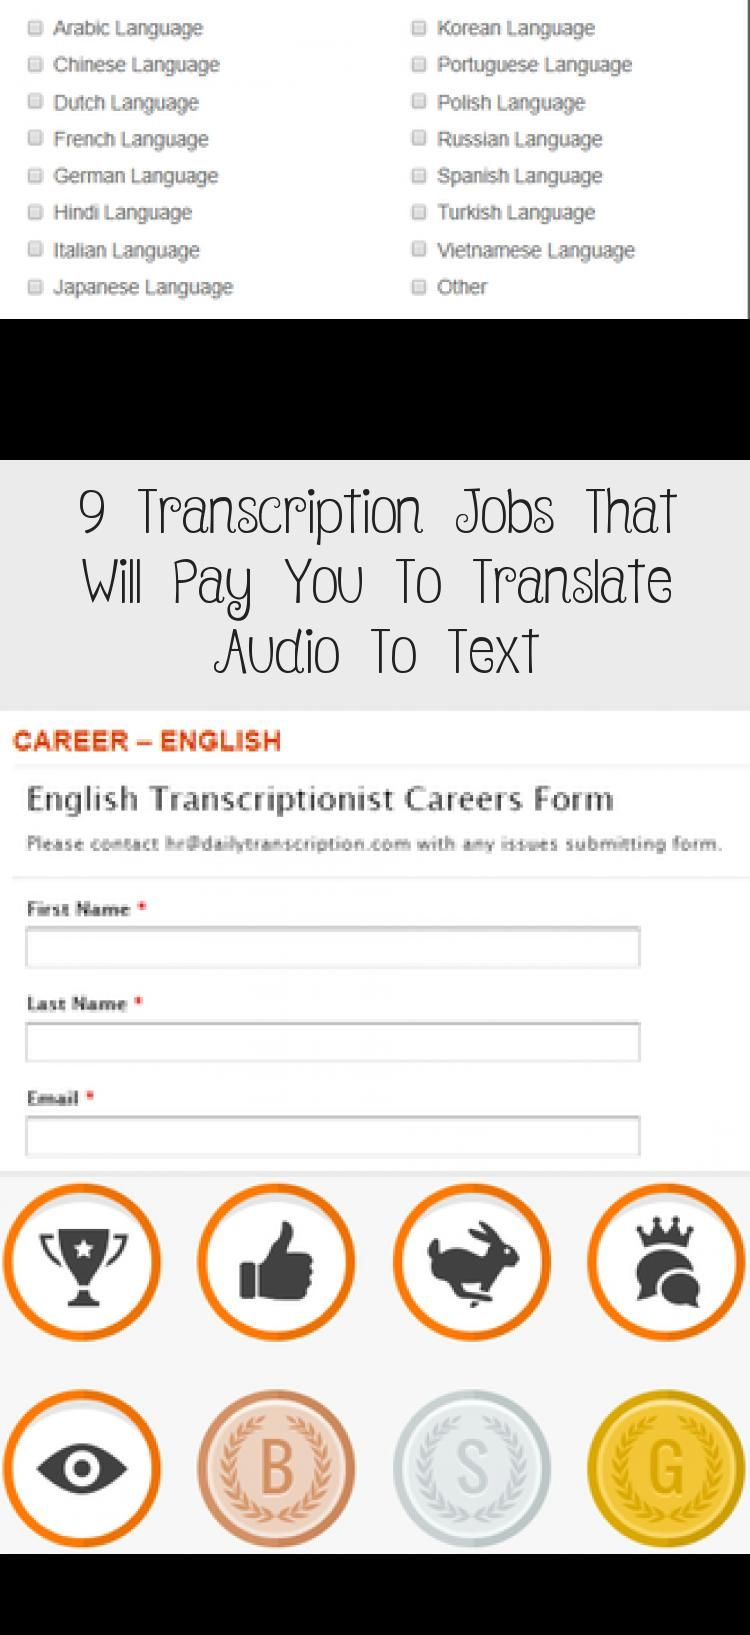 Want to make money as a transcriber? Click to find out